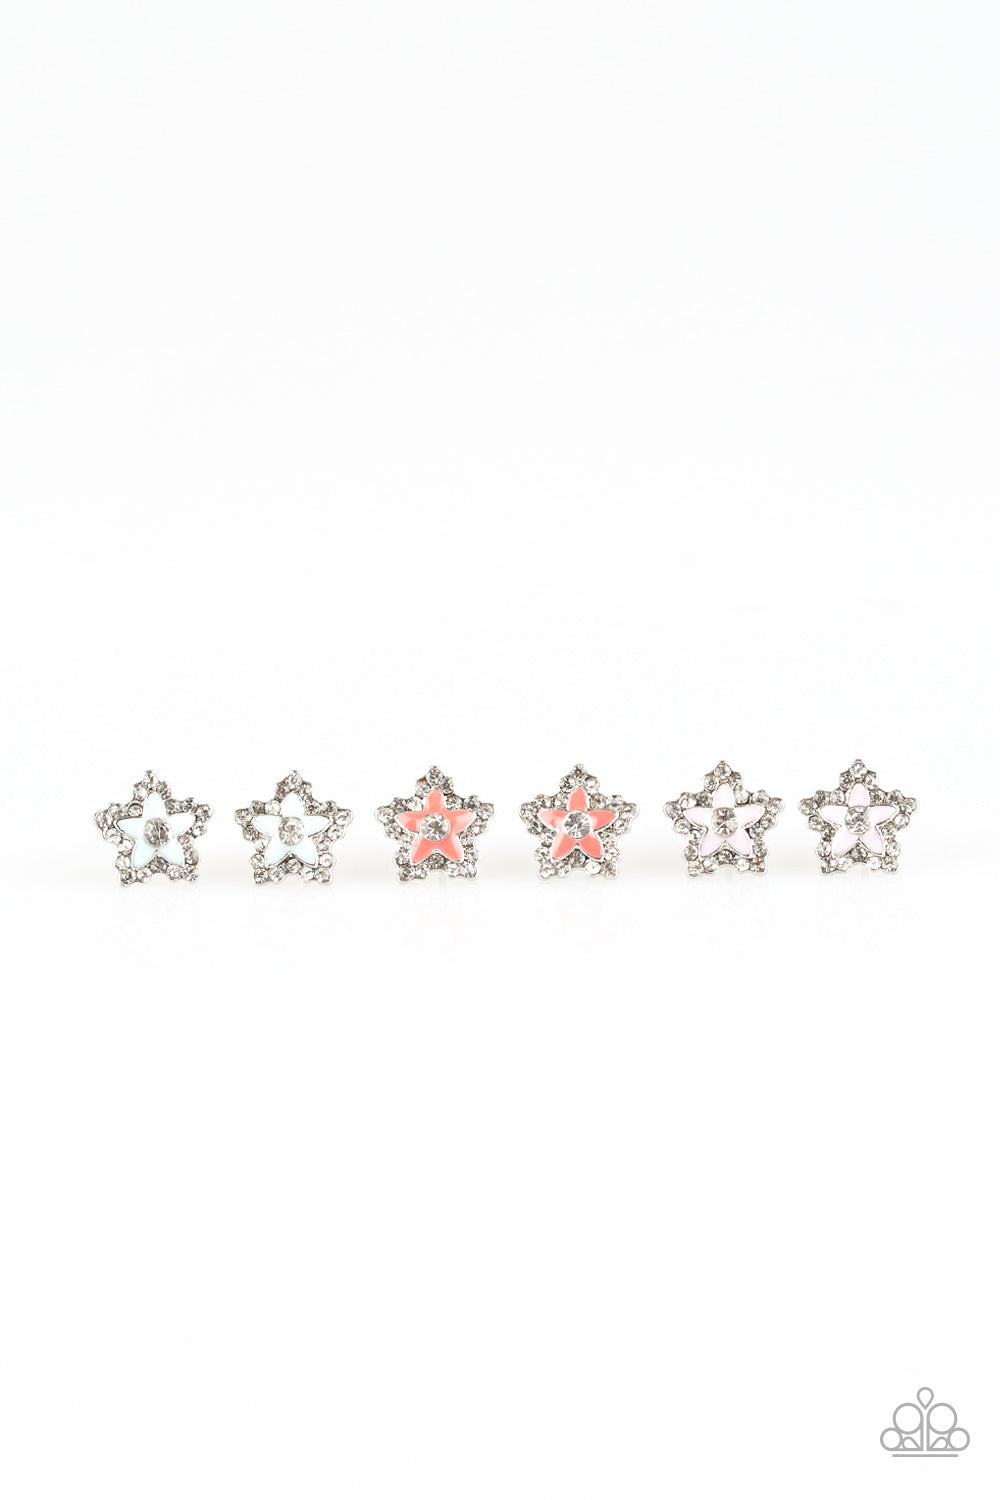 Sparkly Flower Earrings - Paparazzi Starlet Shimmer - Pink Dragon Jewels